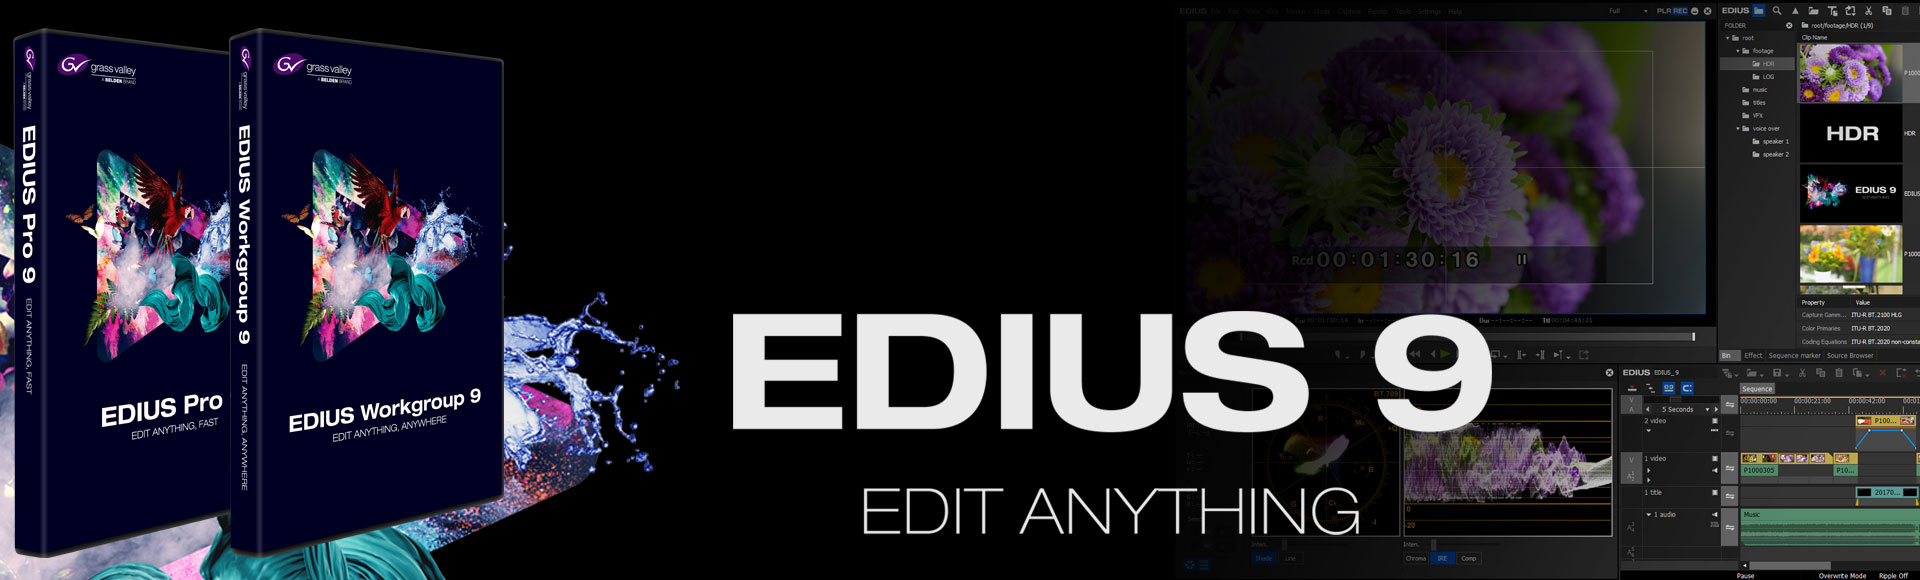 EDIUS 9 - now available